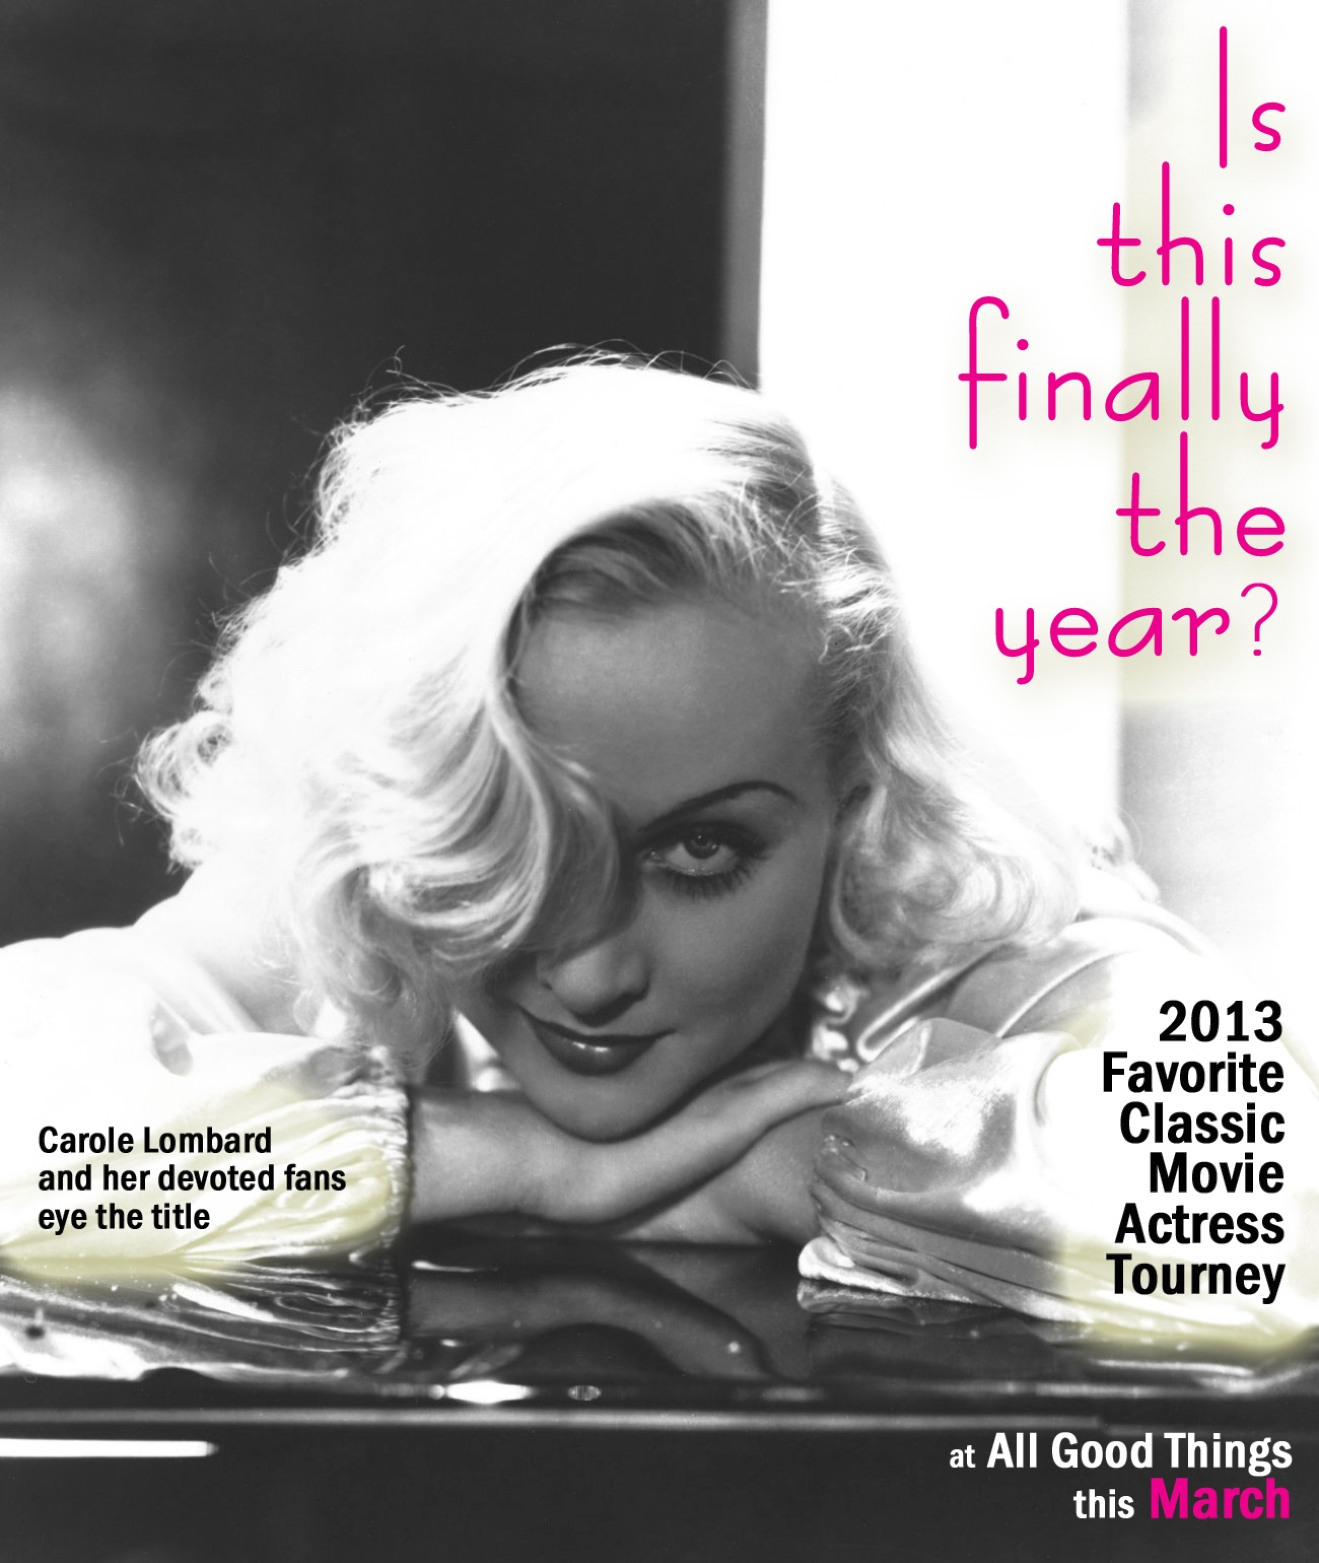 carole lombard 2013 favorite classic movie actress tourney banner 00a